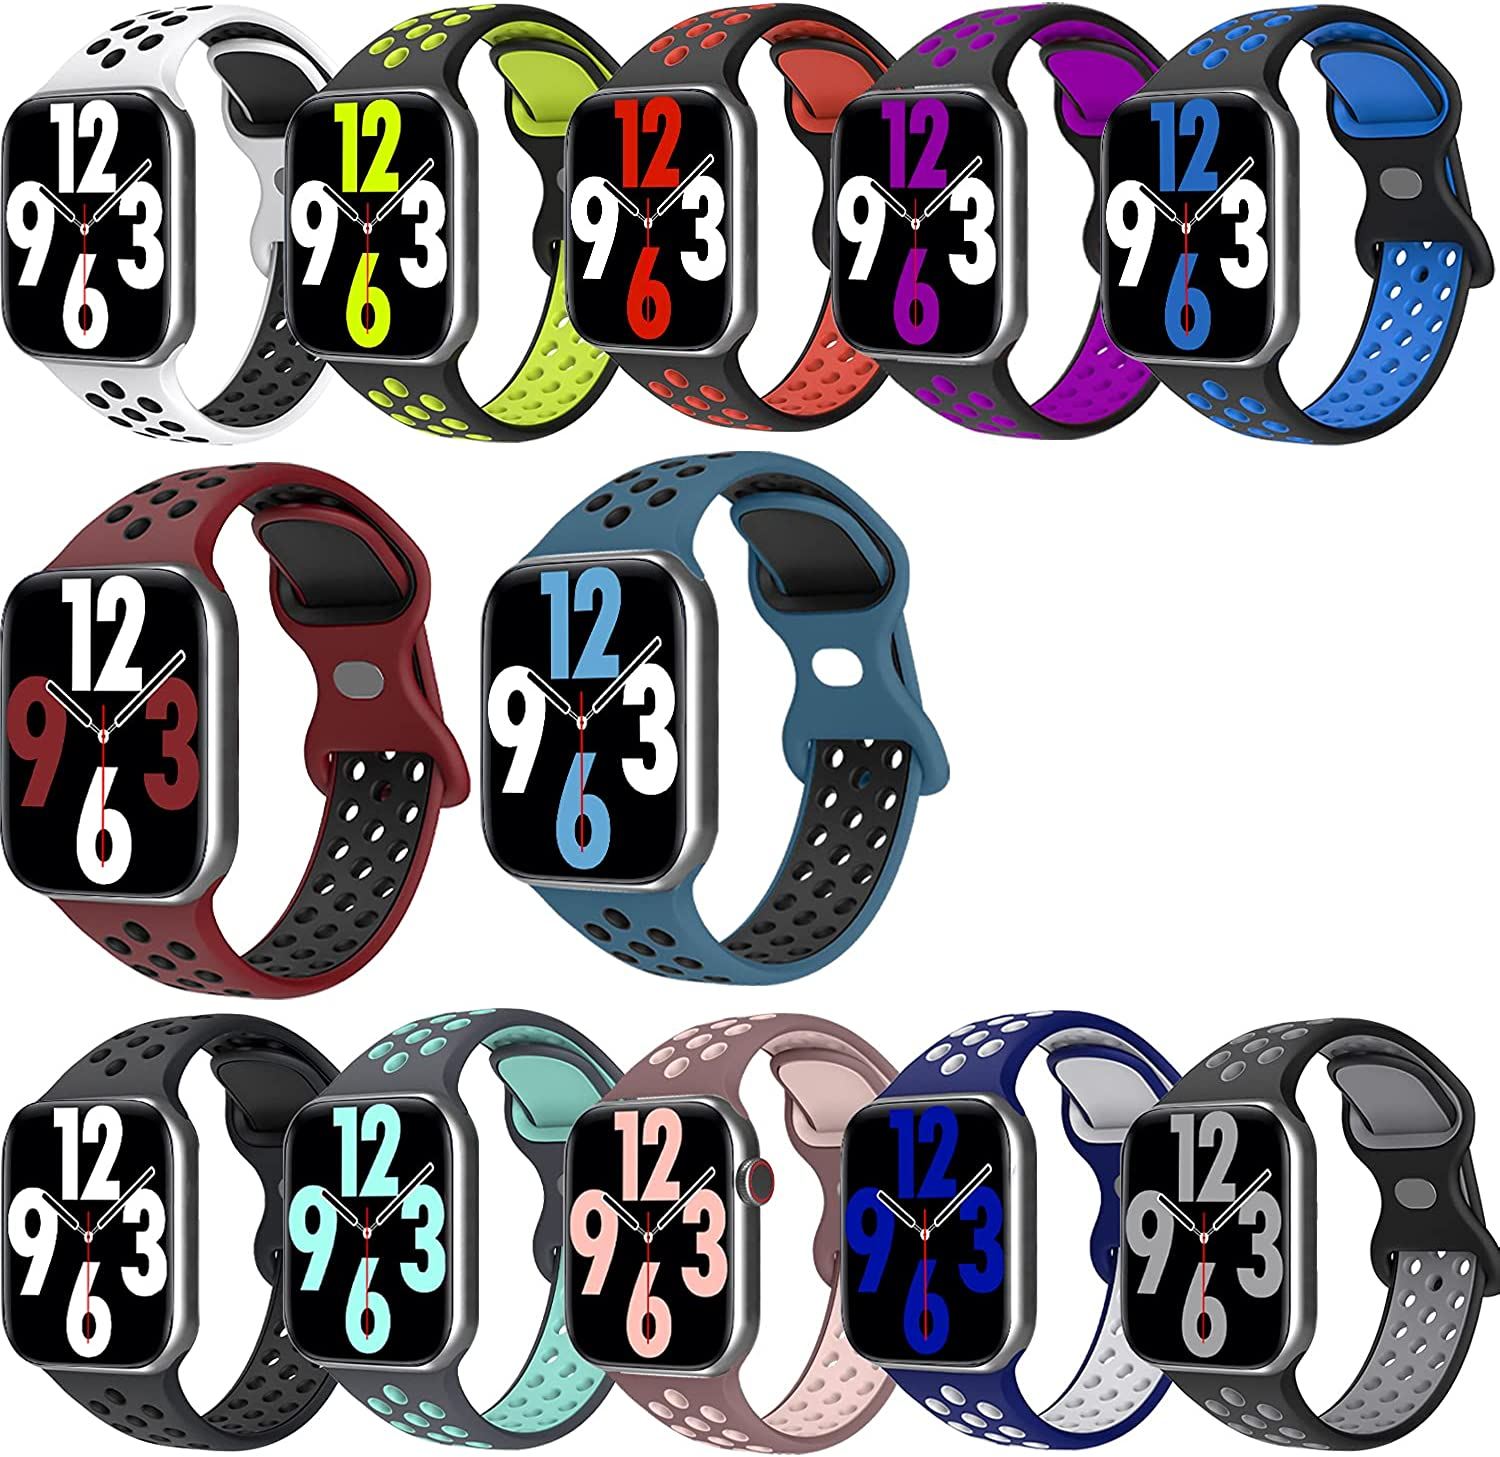 12 Pack Sport Bands Compatible with App le Watch Bands 38mm 40mm 41mm 42mm 44mm 45mm, Breathable Soft Silicone Sport Band Repacement Strap for Watch Series 7/6/5/4/3/2/1/SE, Men Women